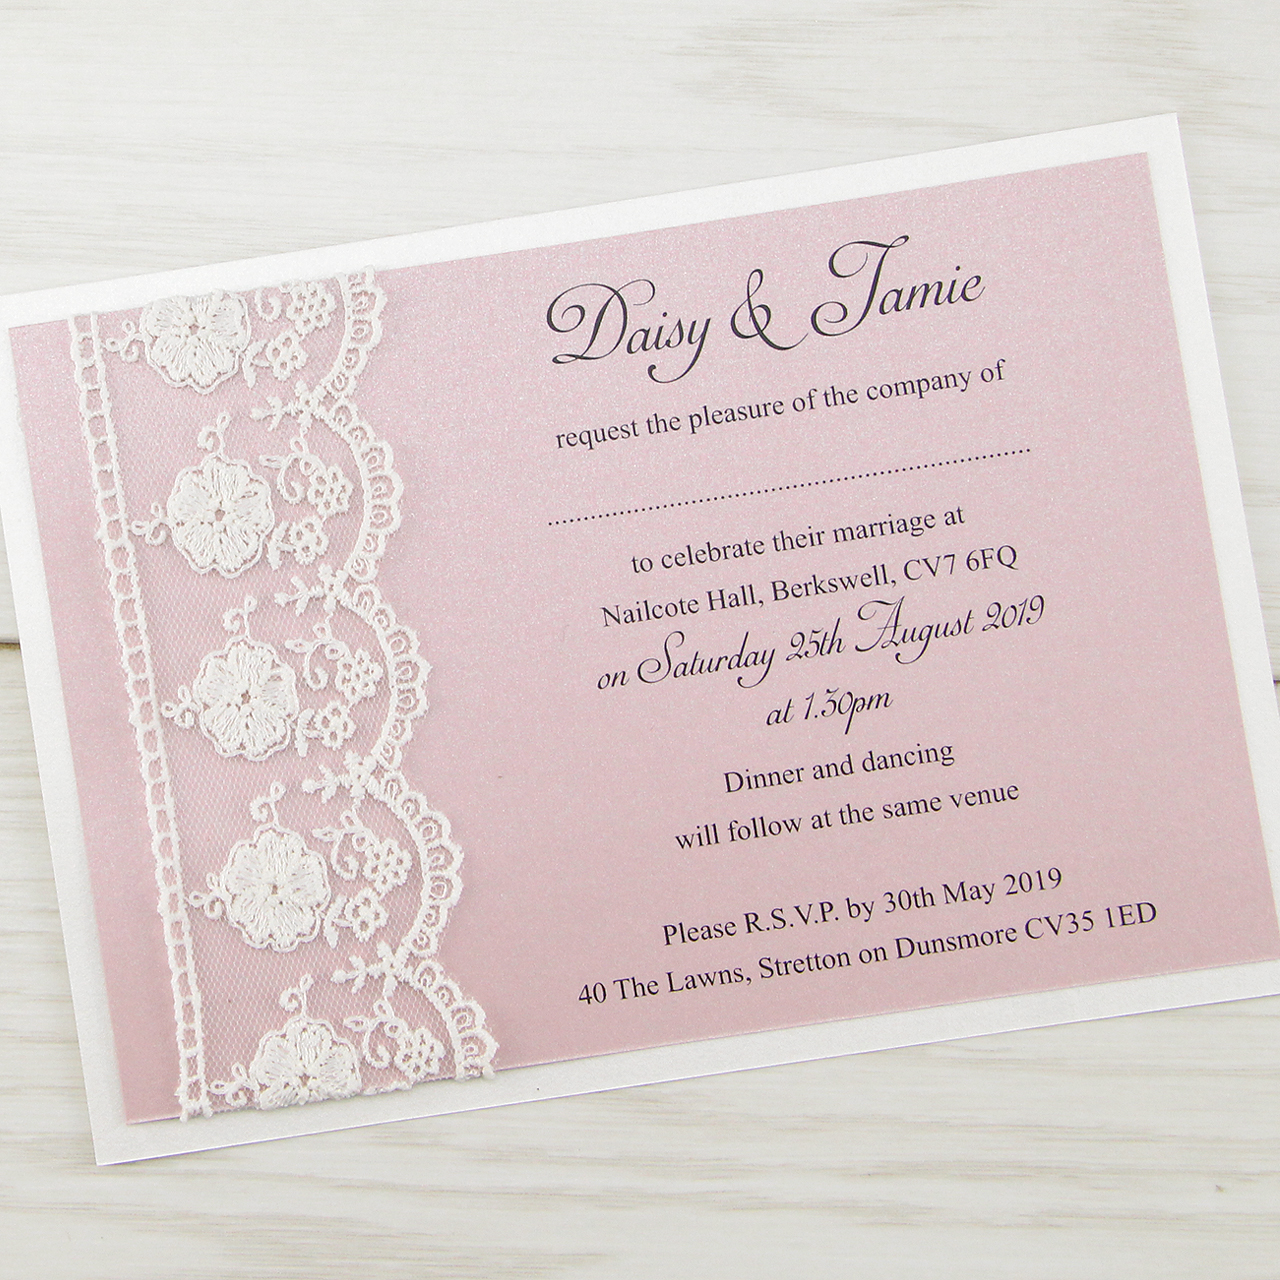 Invitation Ideas For Wedding: Pure Invitation Wedding Invites